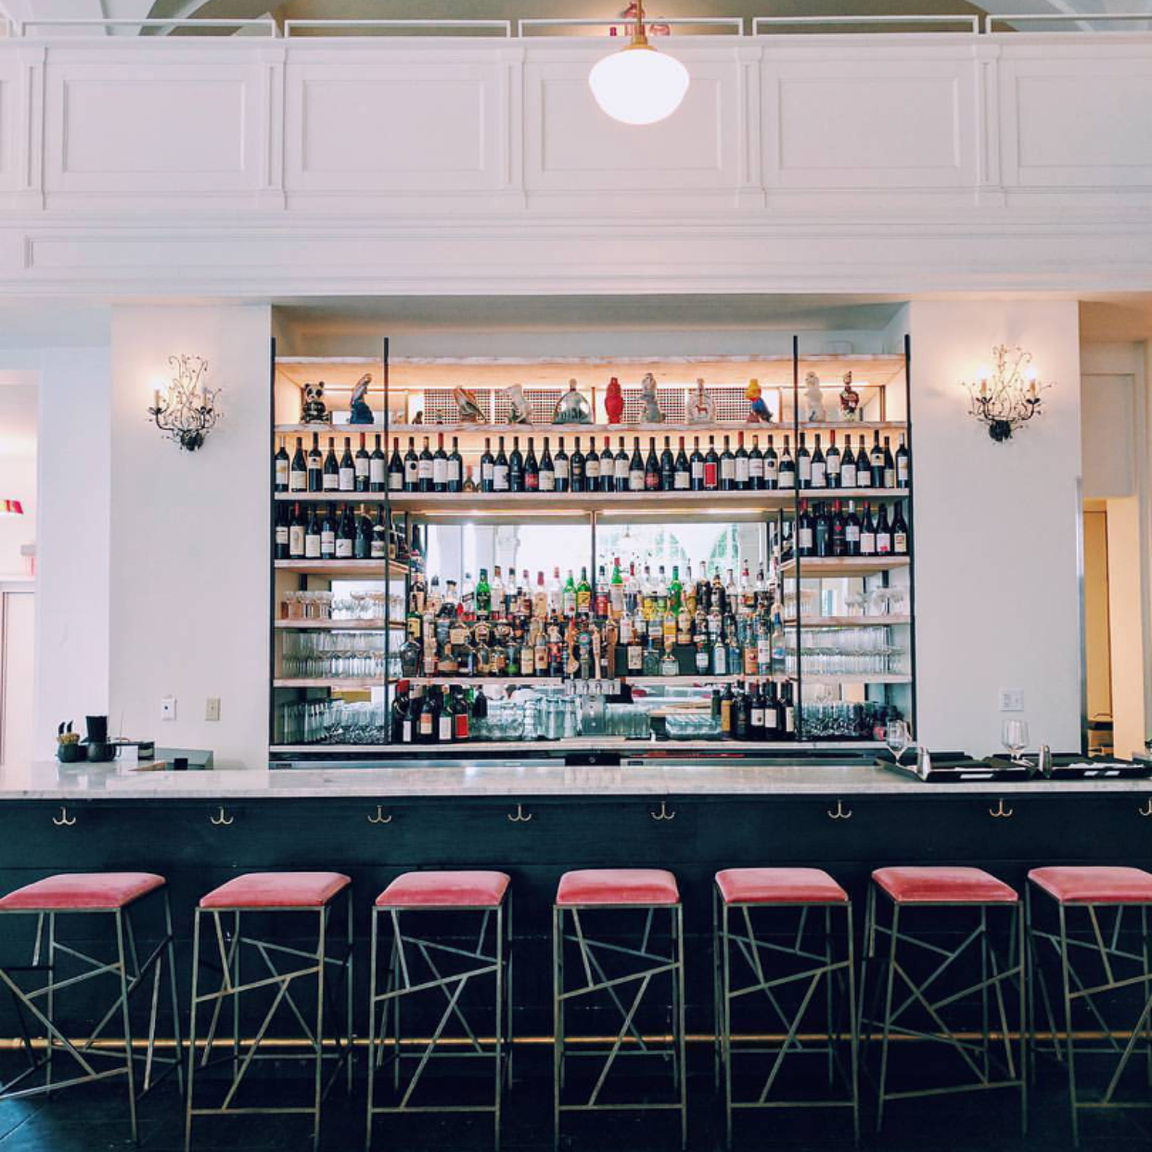 Who wouldn't want to sip something delicious from this bar?! I mean look at those velvet stools!